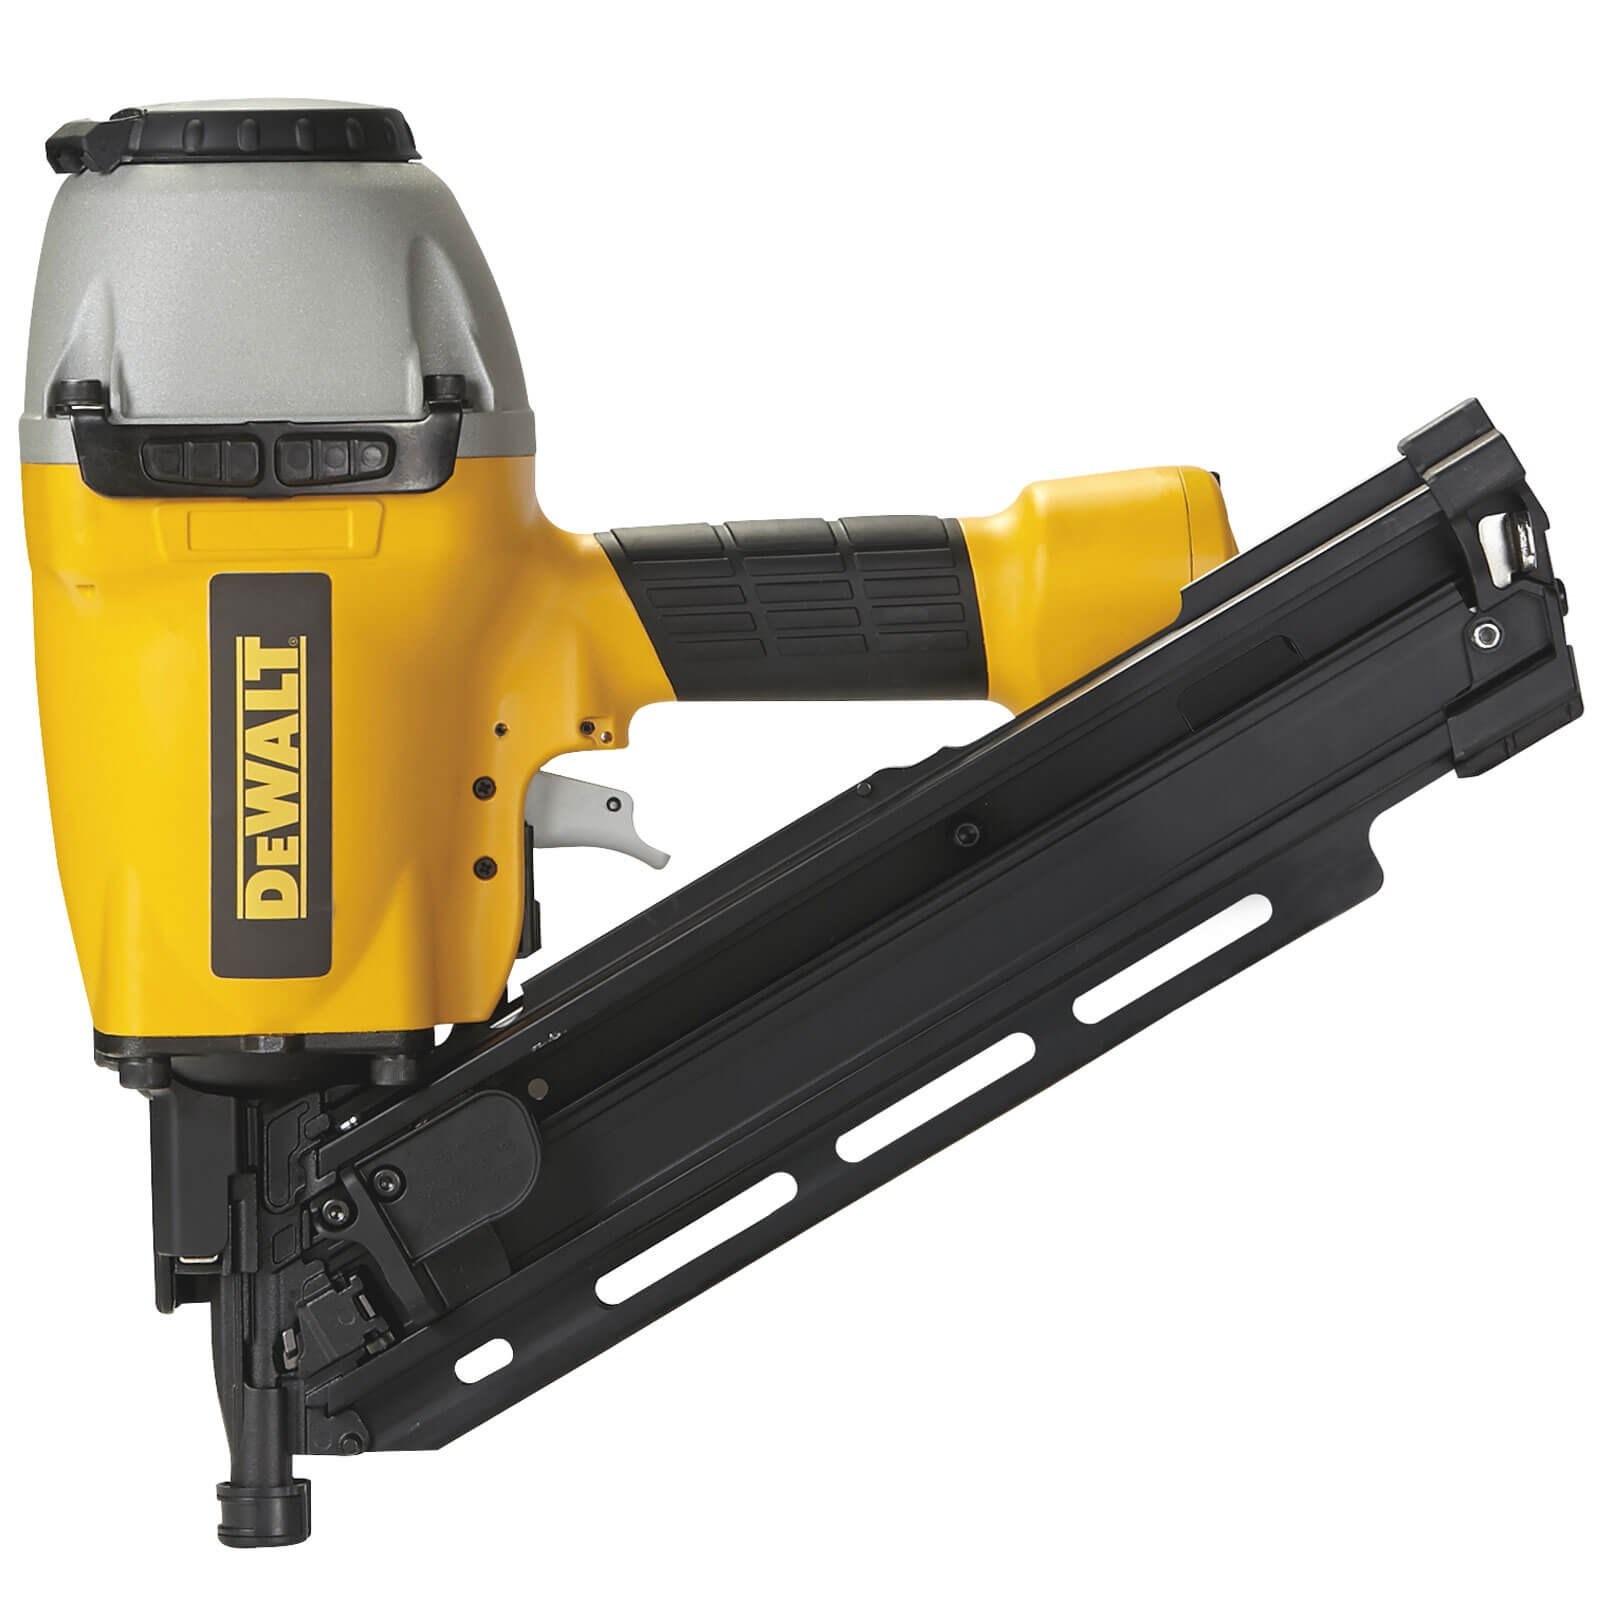 Dewalt Dpn9033sm Short Magazine Framing Air Nailer Gun Air Nail Staple Guns